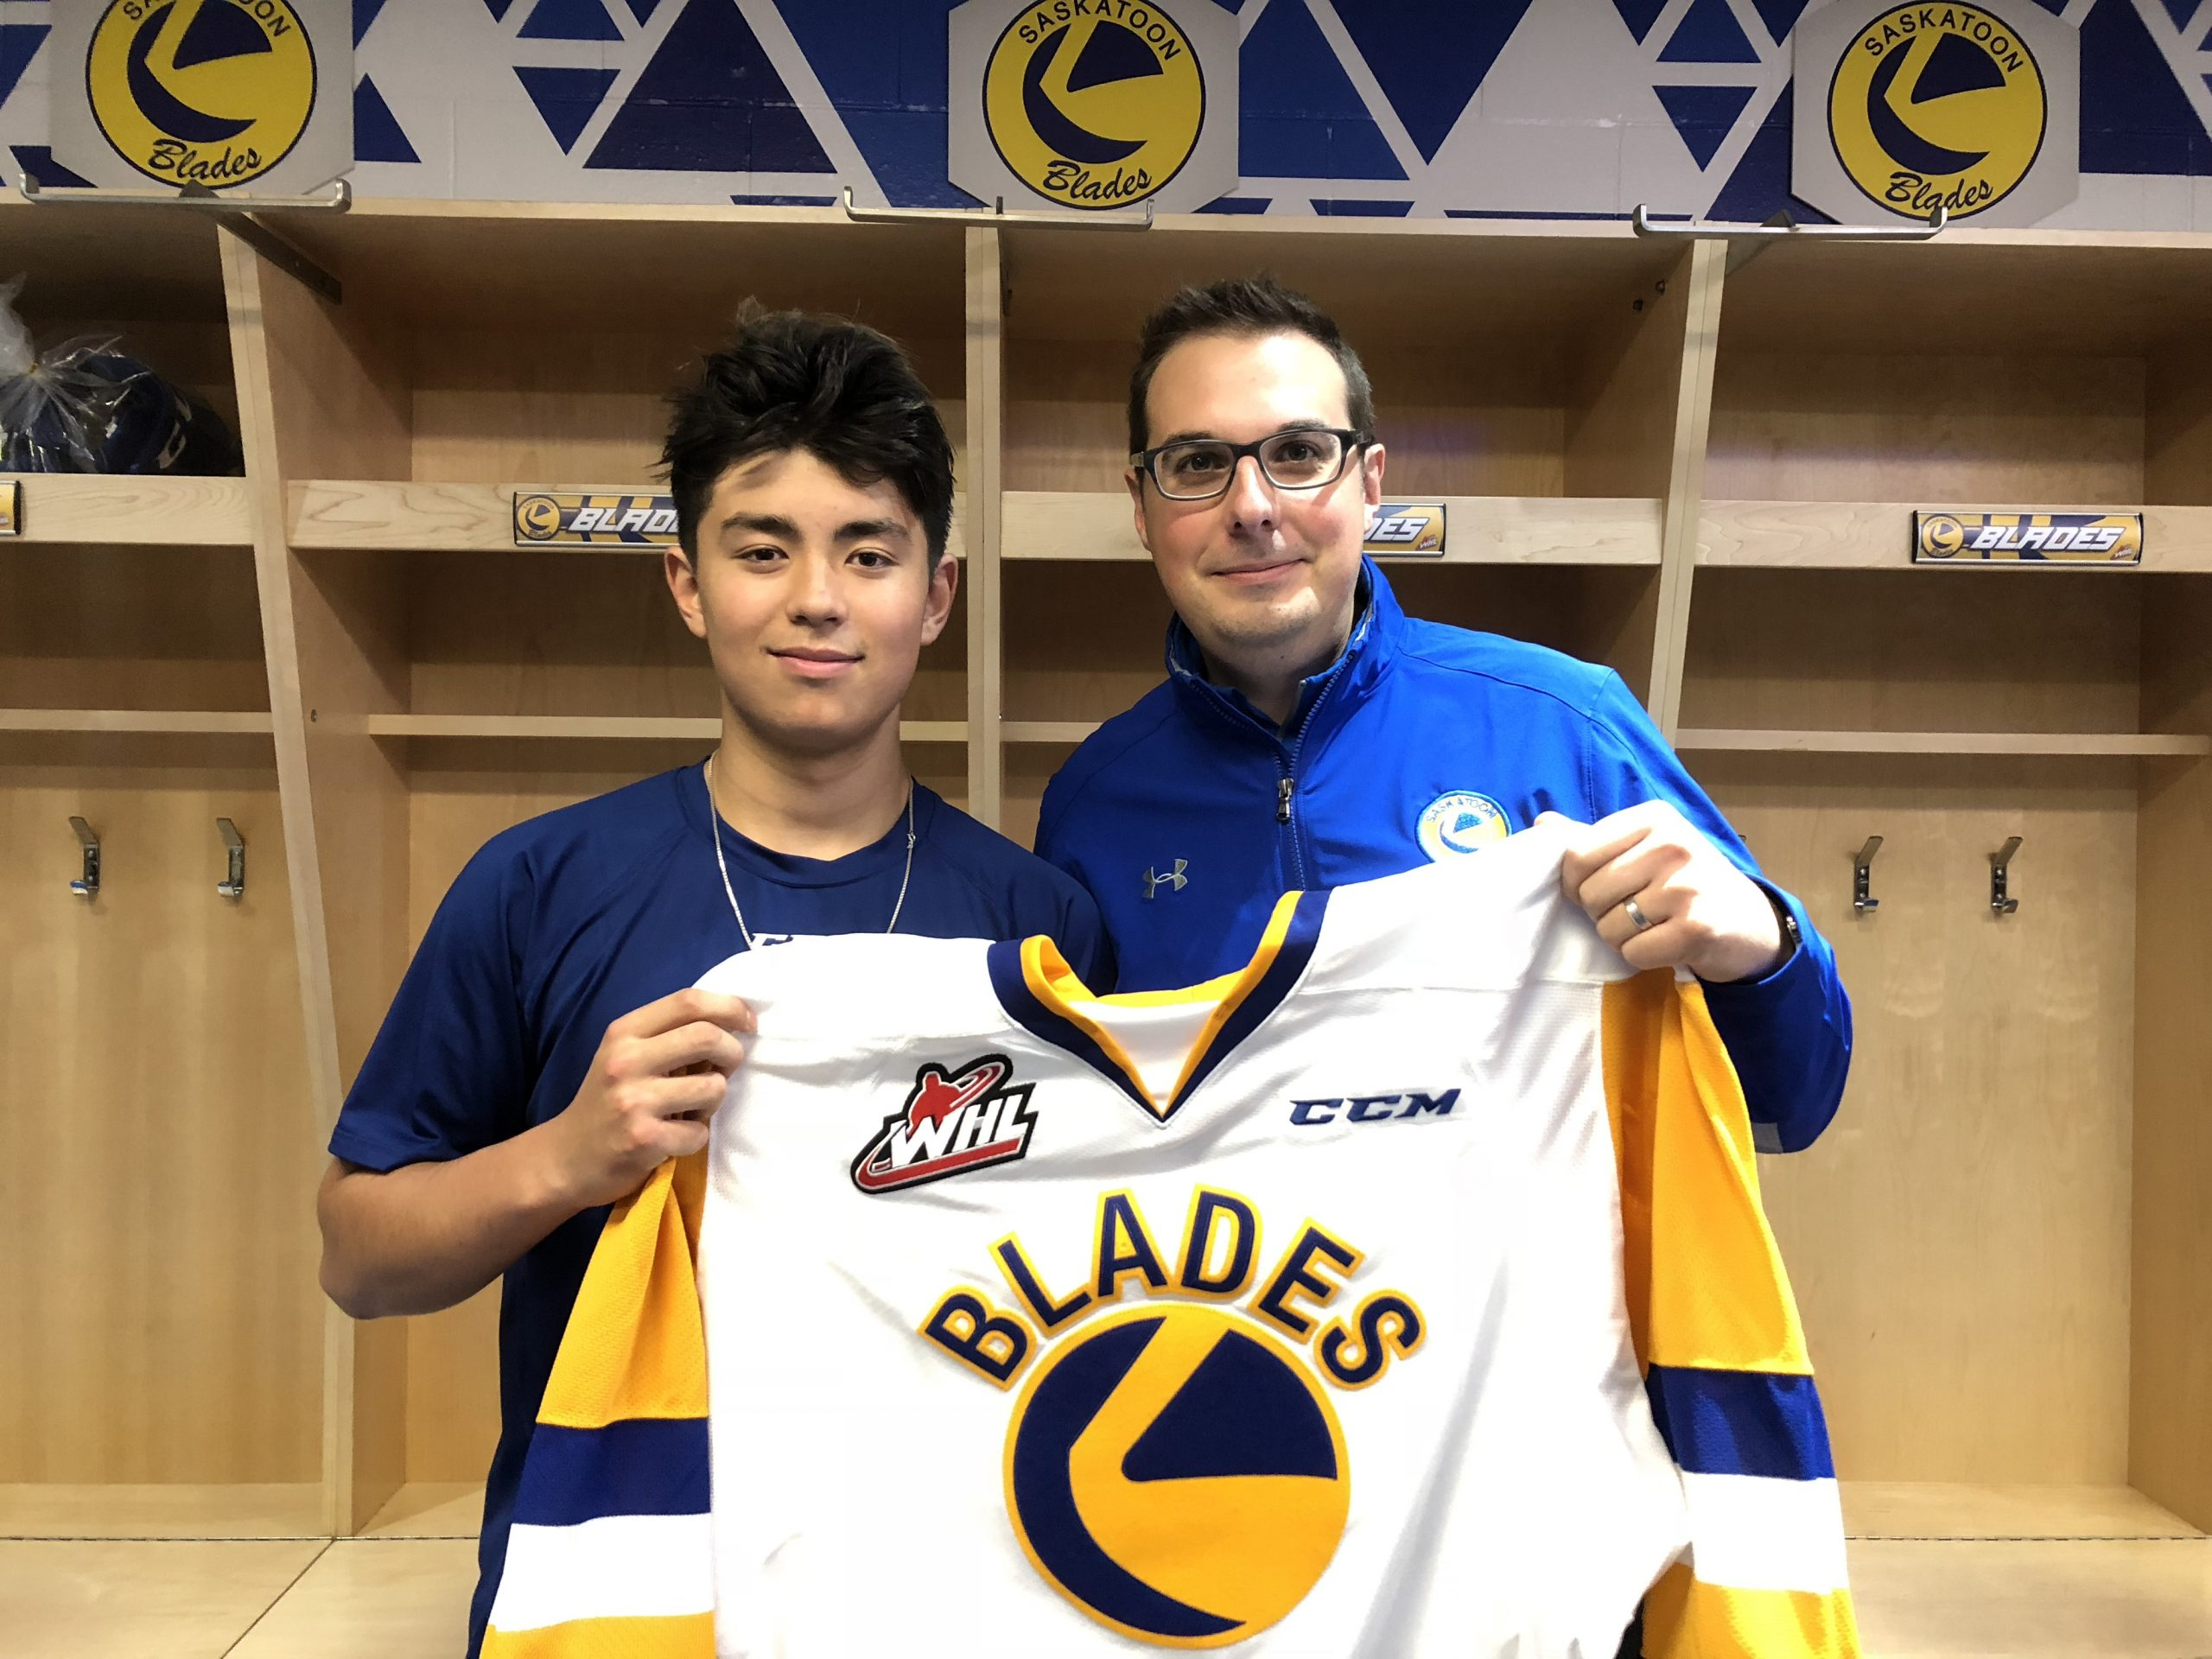 Blades Sign Late-Round Draft to WHL Contract